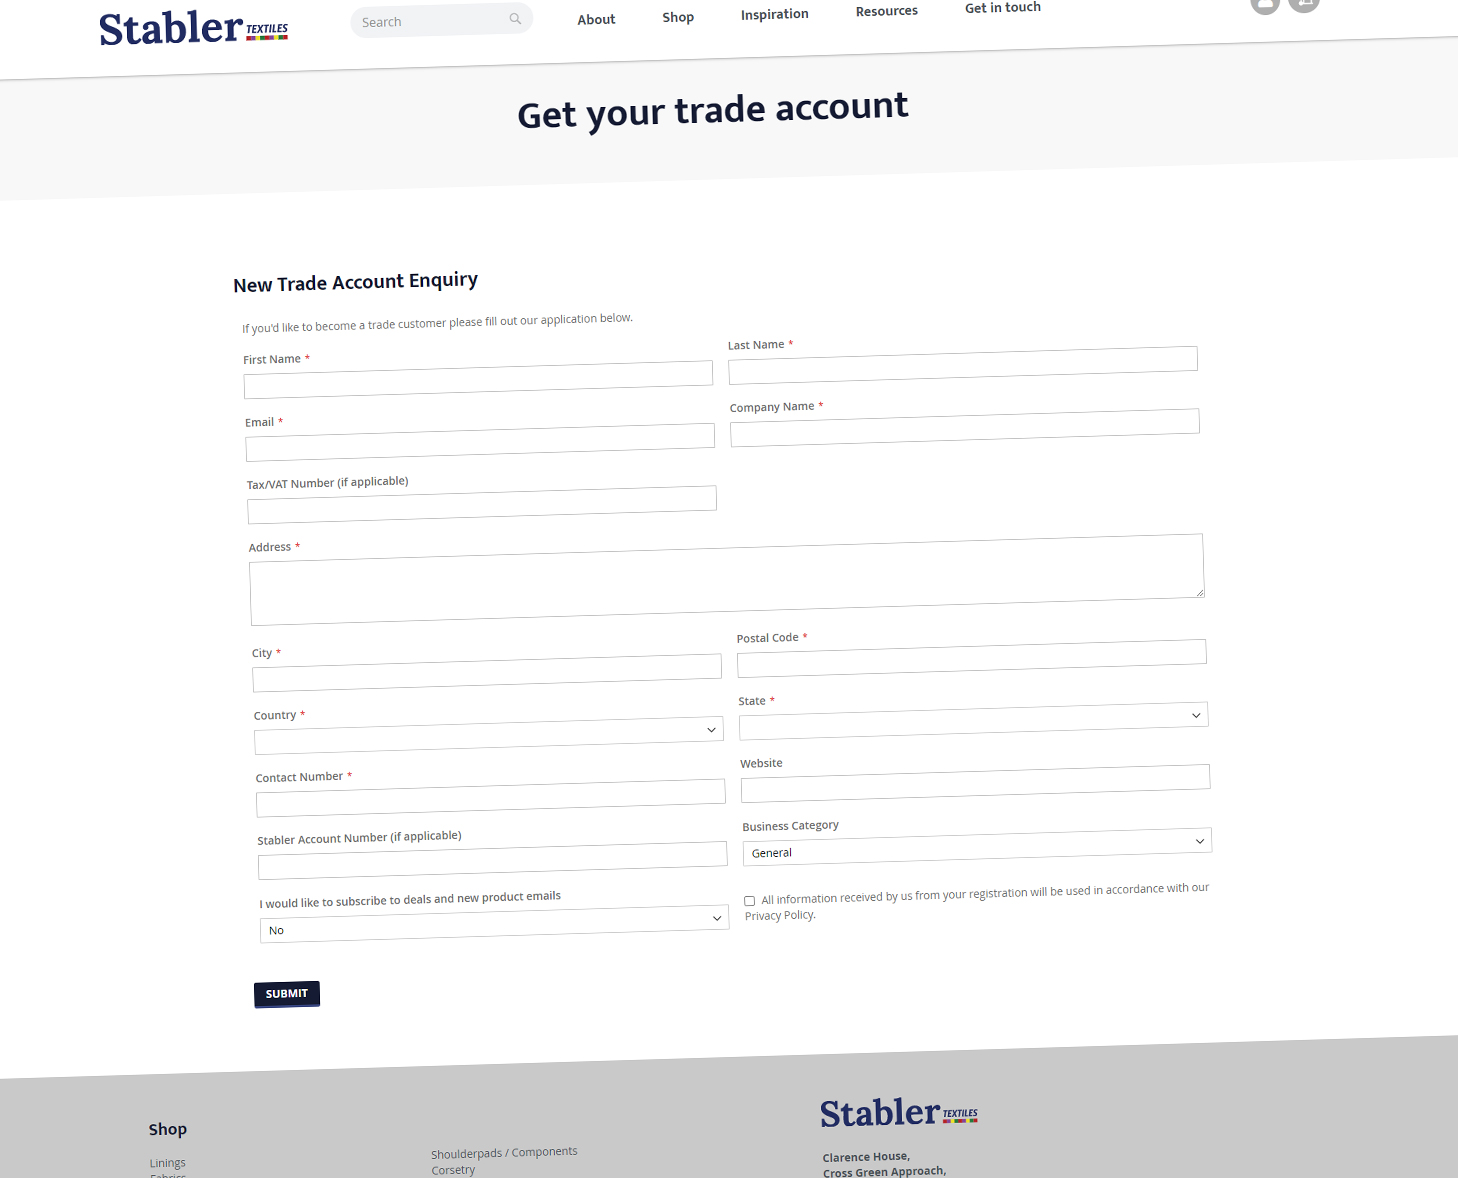 Stabler Textiles Trade Enquiry Form